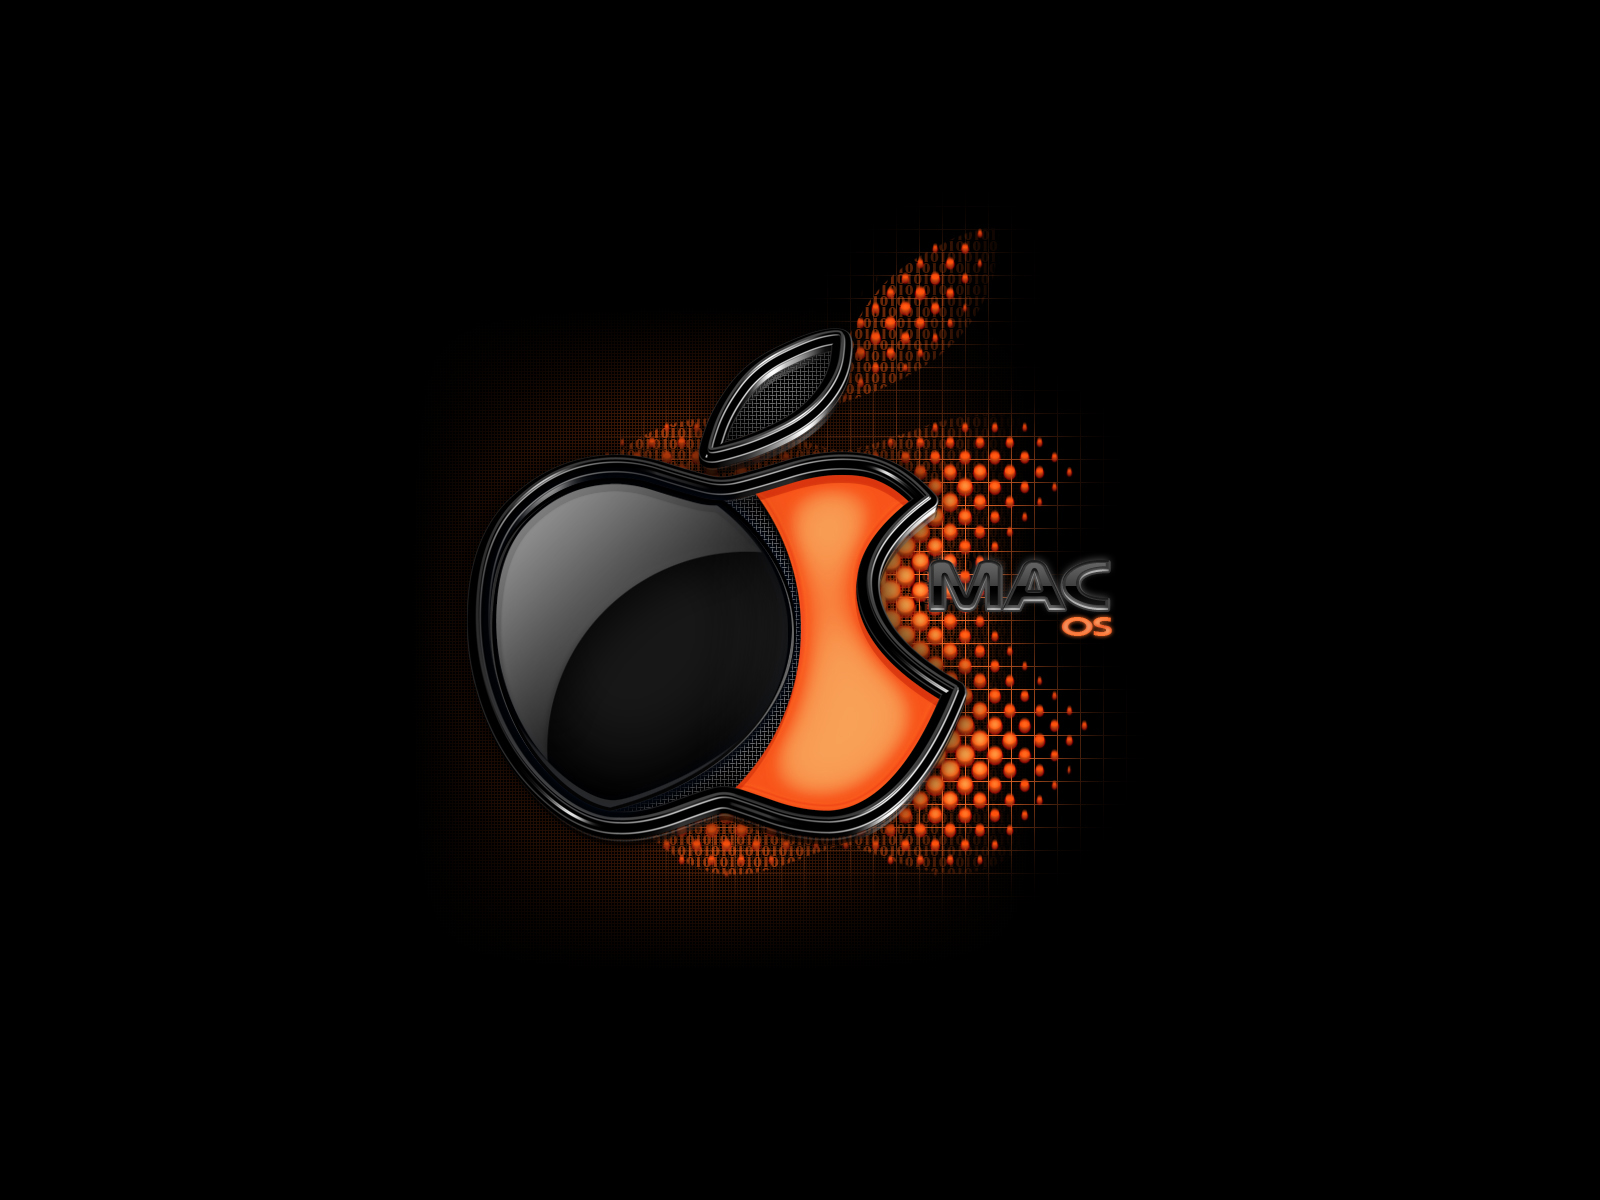 MAC OS Wallpapers HD Wallpapers 1600x1200